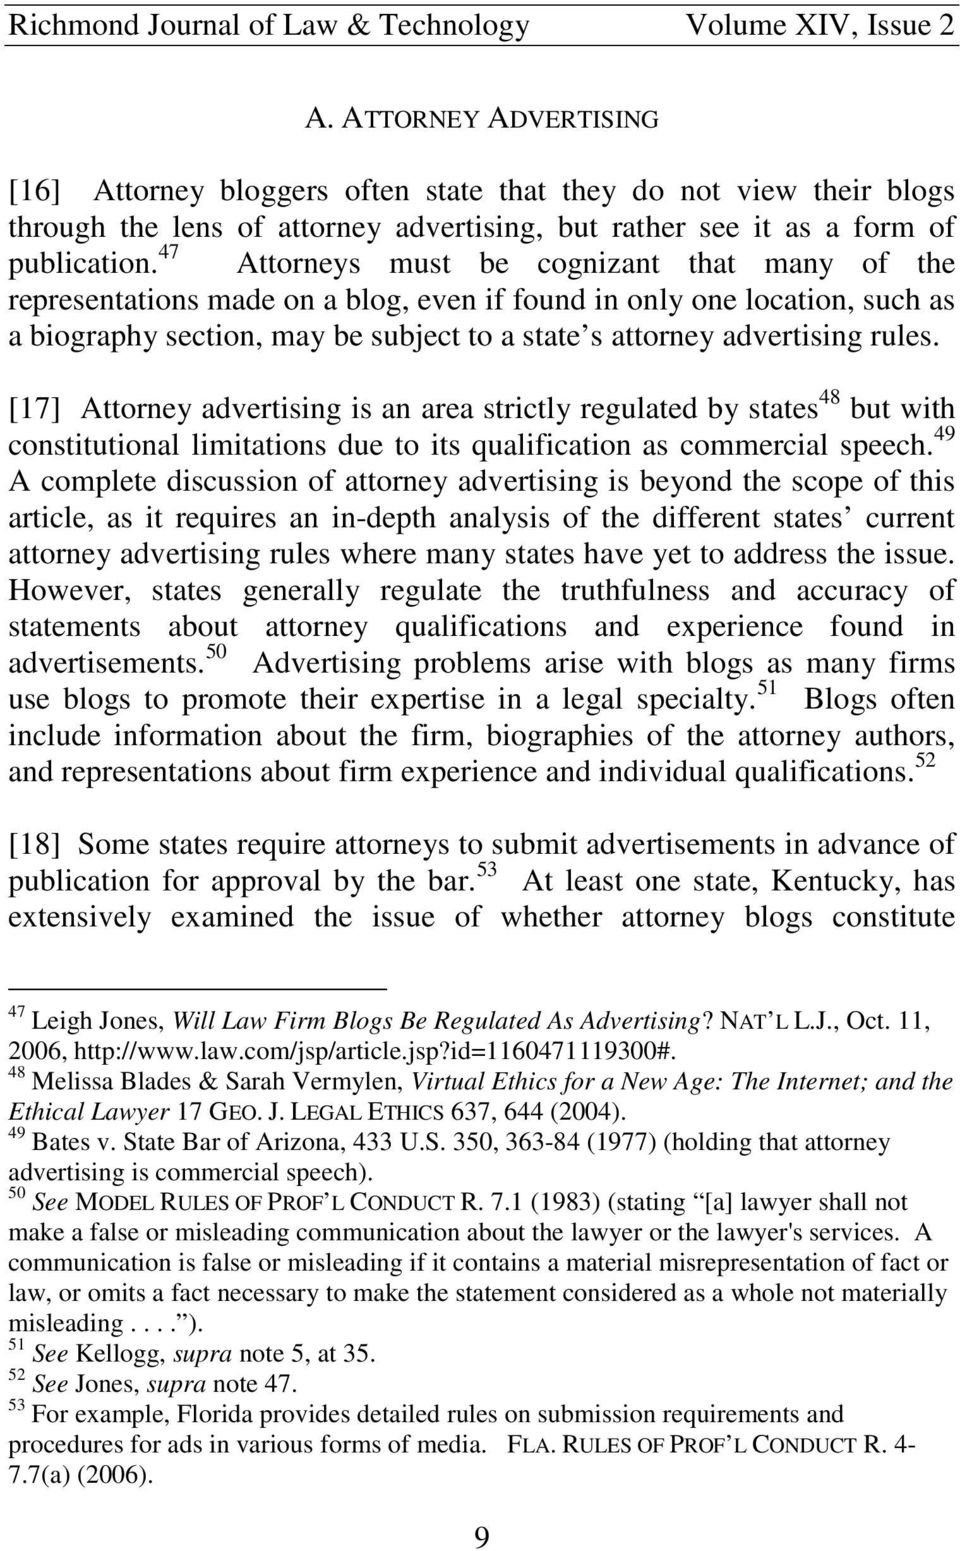 [17] Attorney advertising is an area strictly regulated by states 48 but with constitutional limitations due to its qualification as commercial speech.